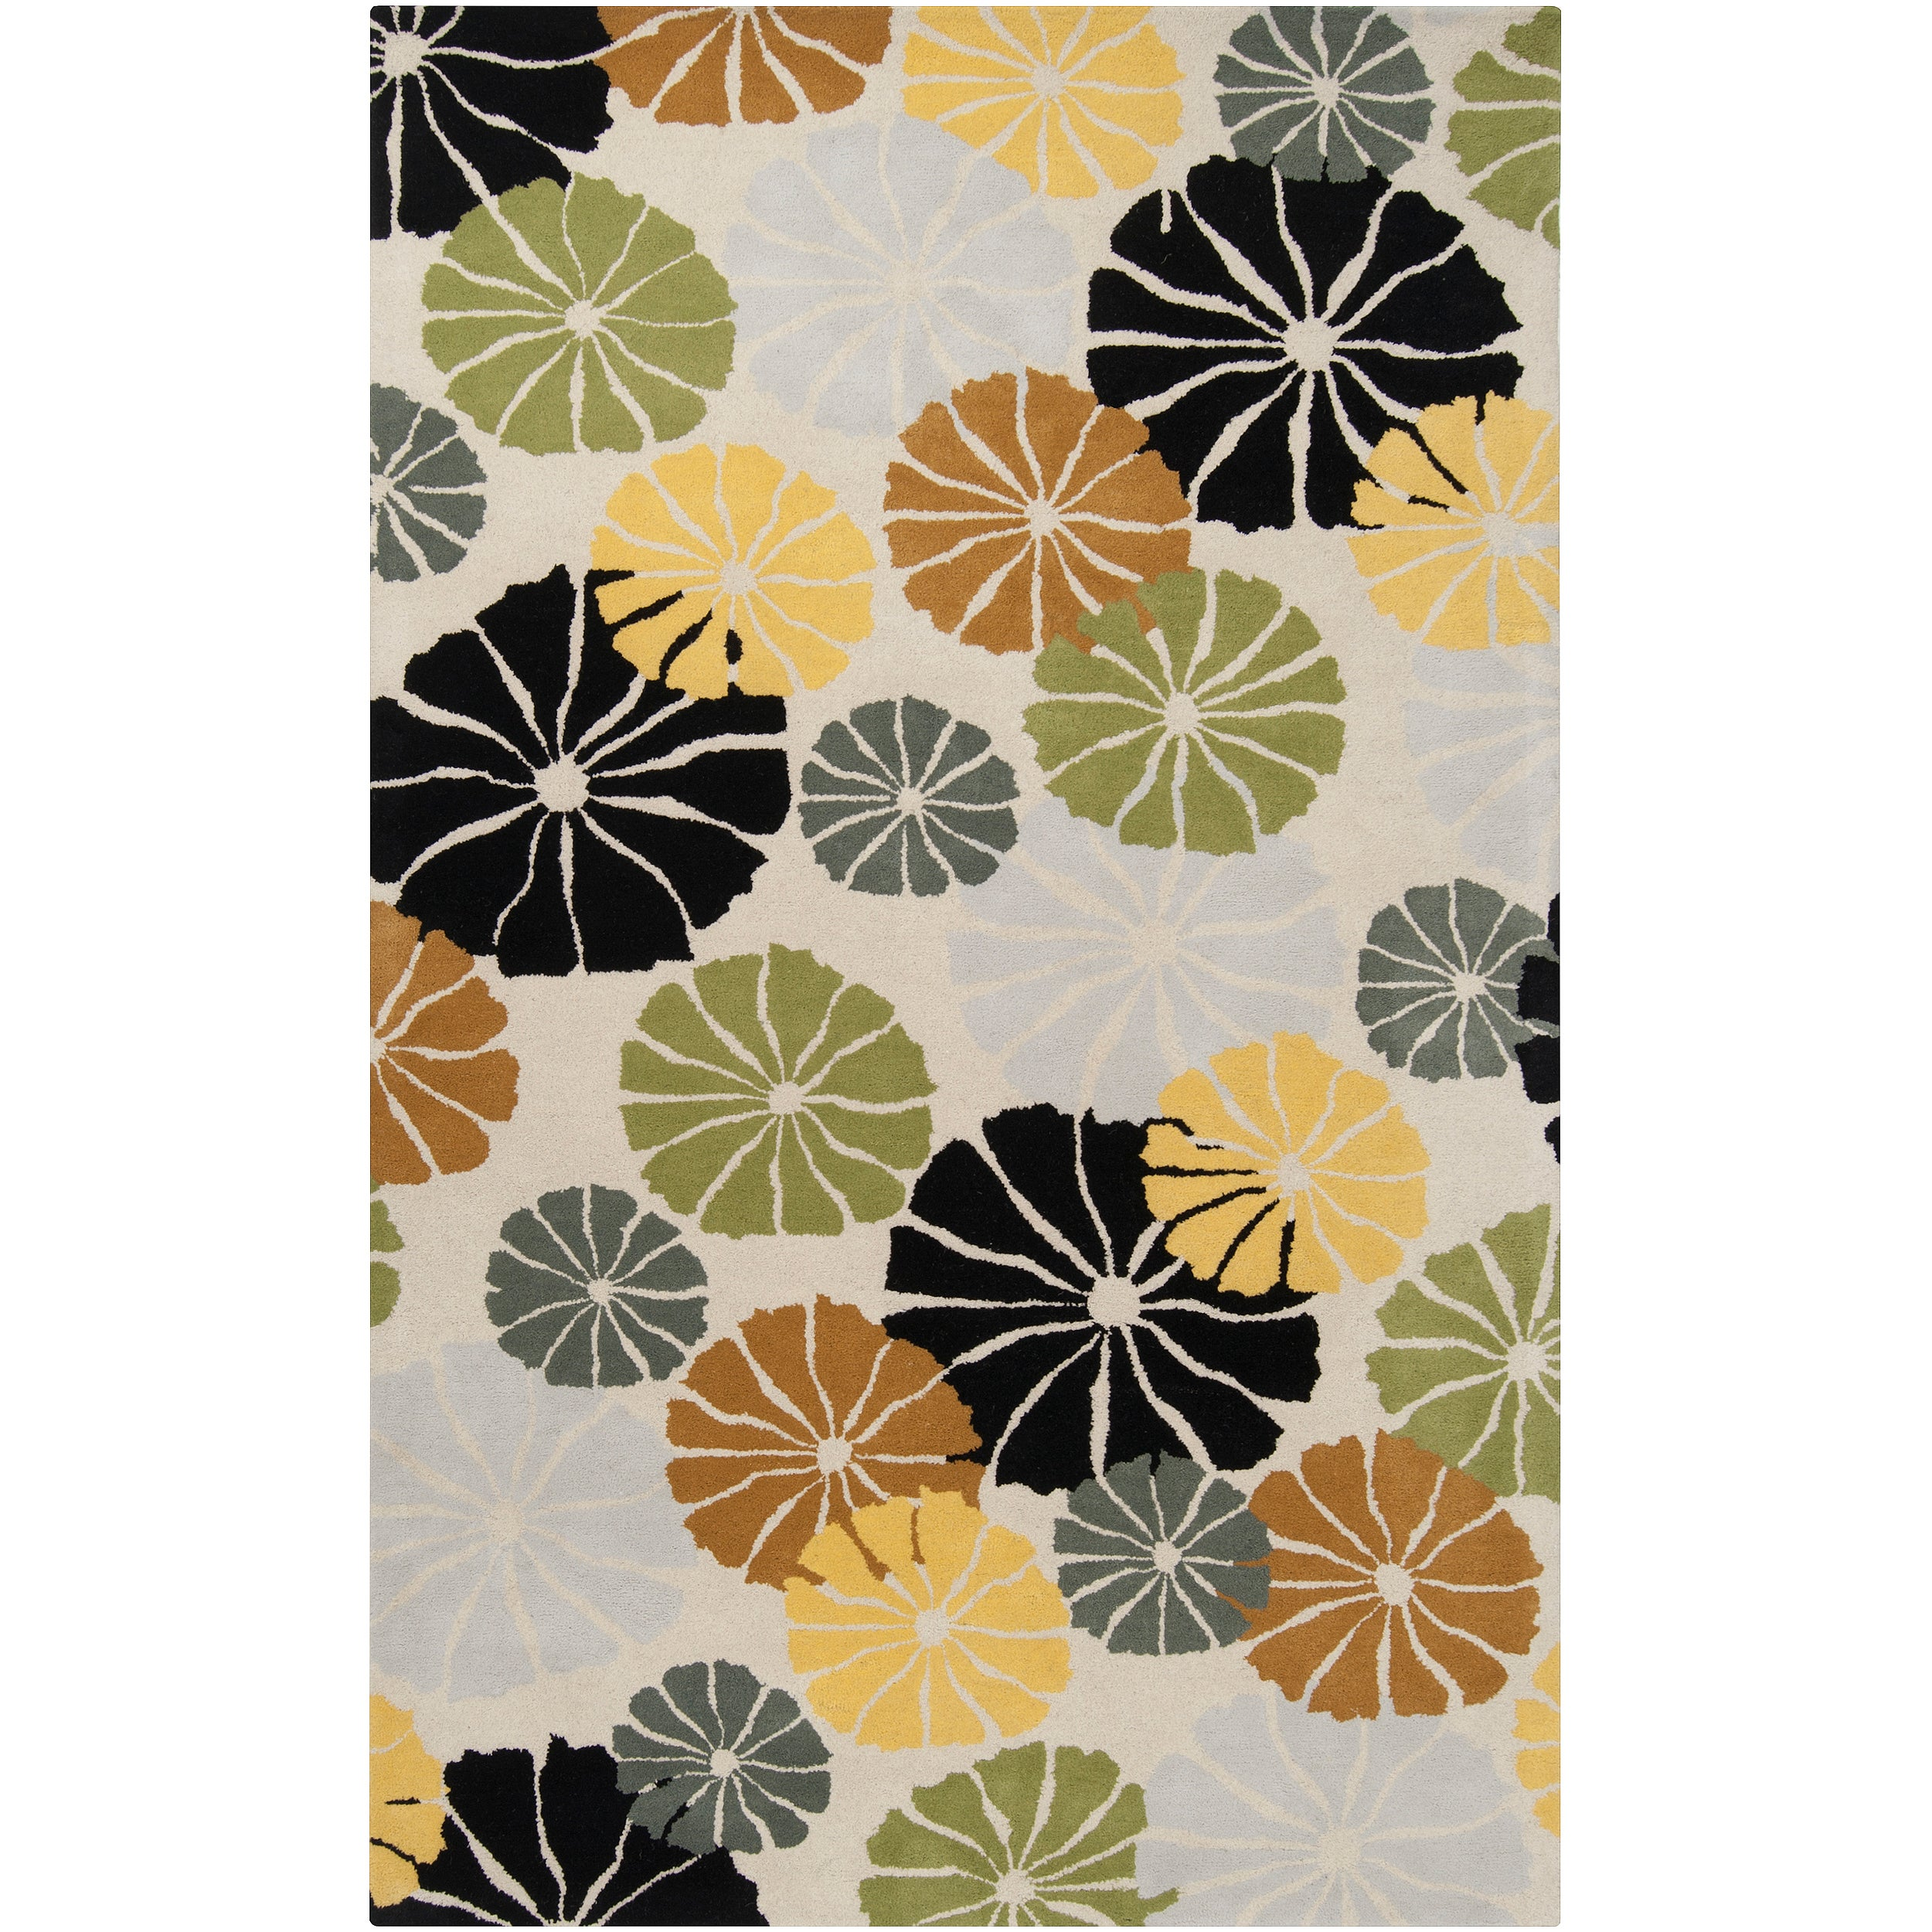 Tepper Jackson Hand-tufted Contemporary Multi Colored Floral Dreamscape Wool Rug (8' x 11')